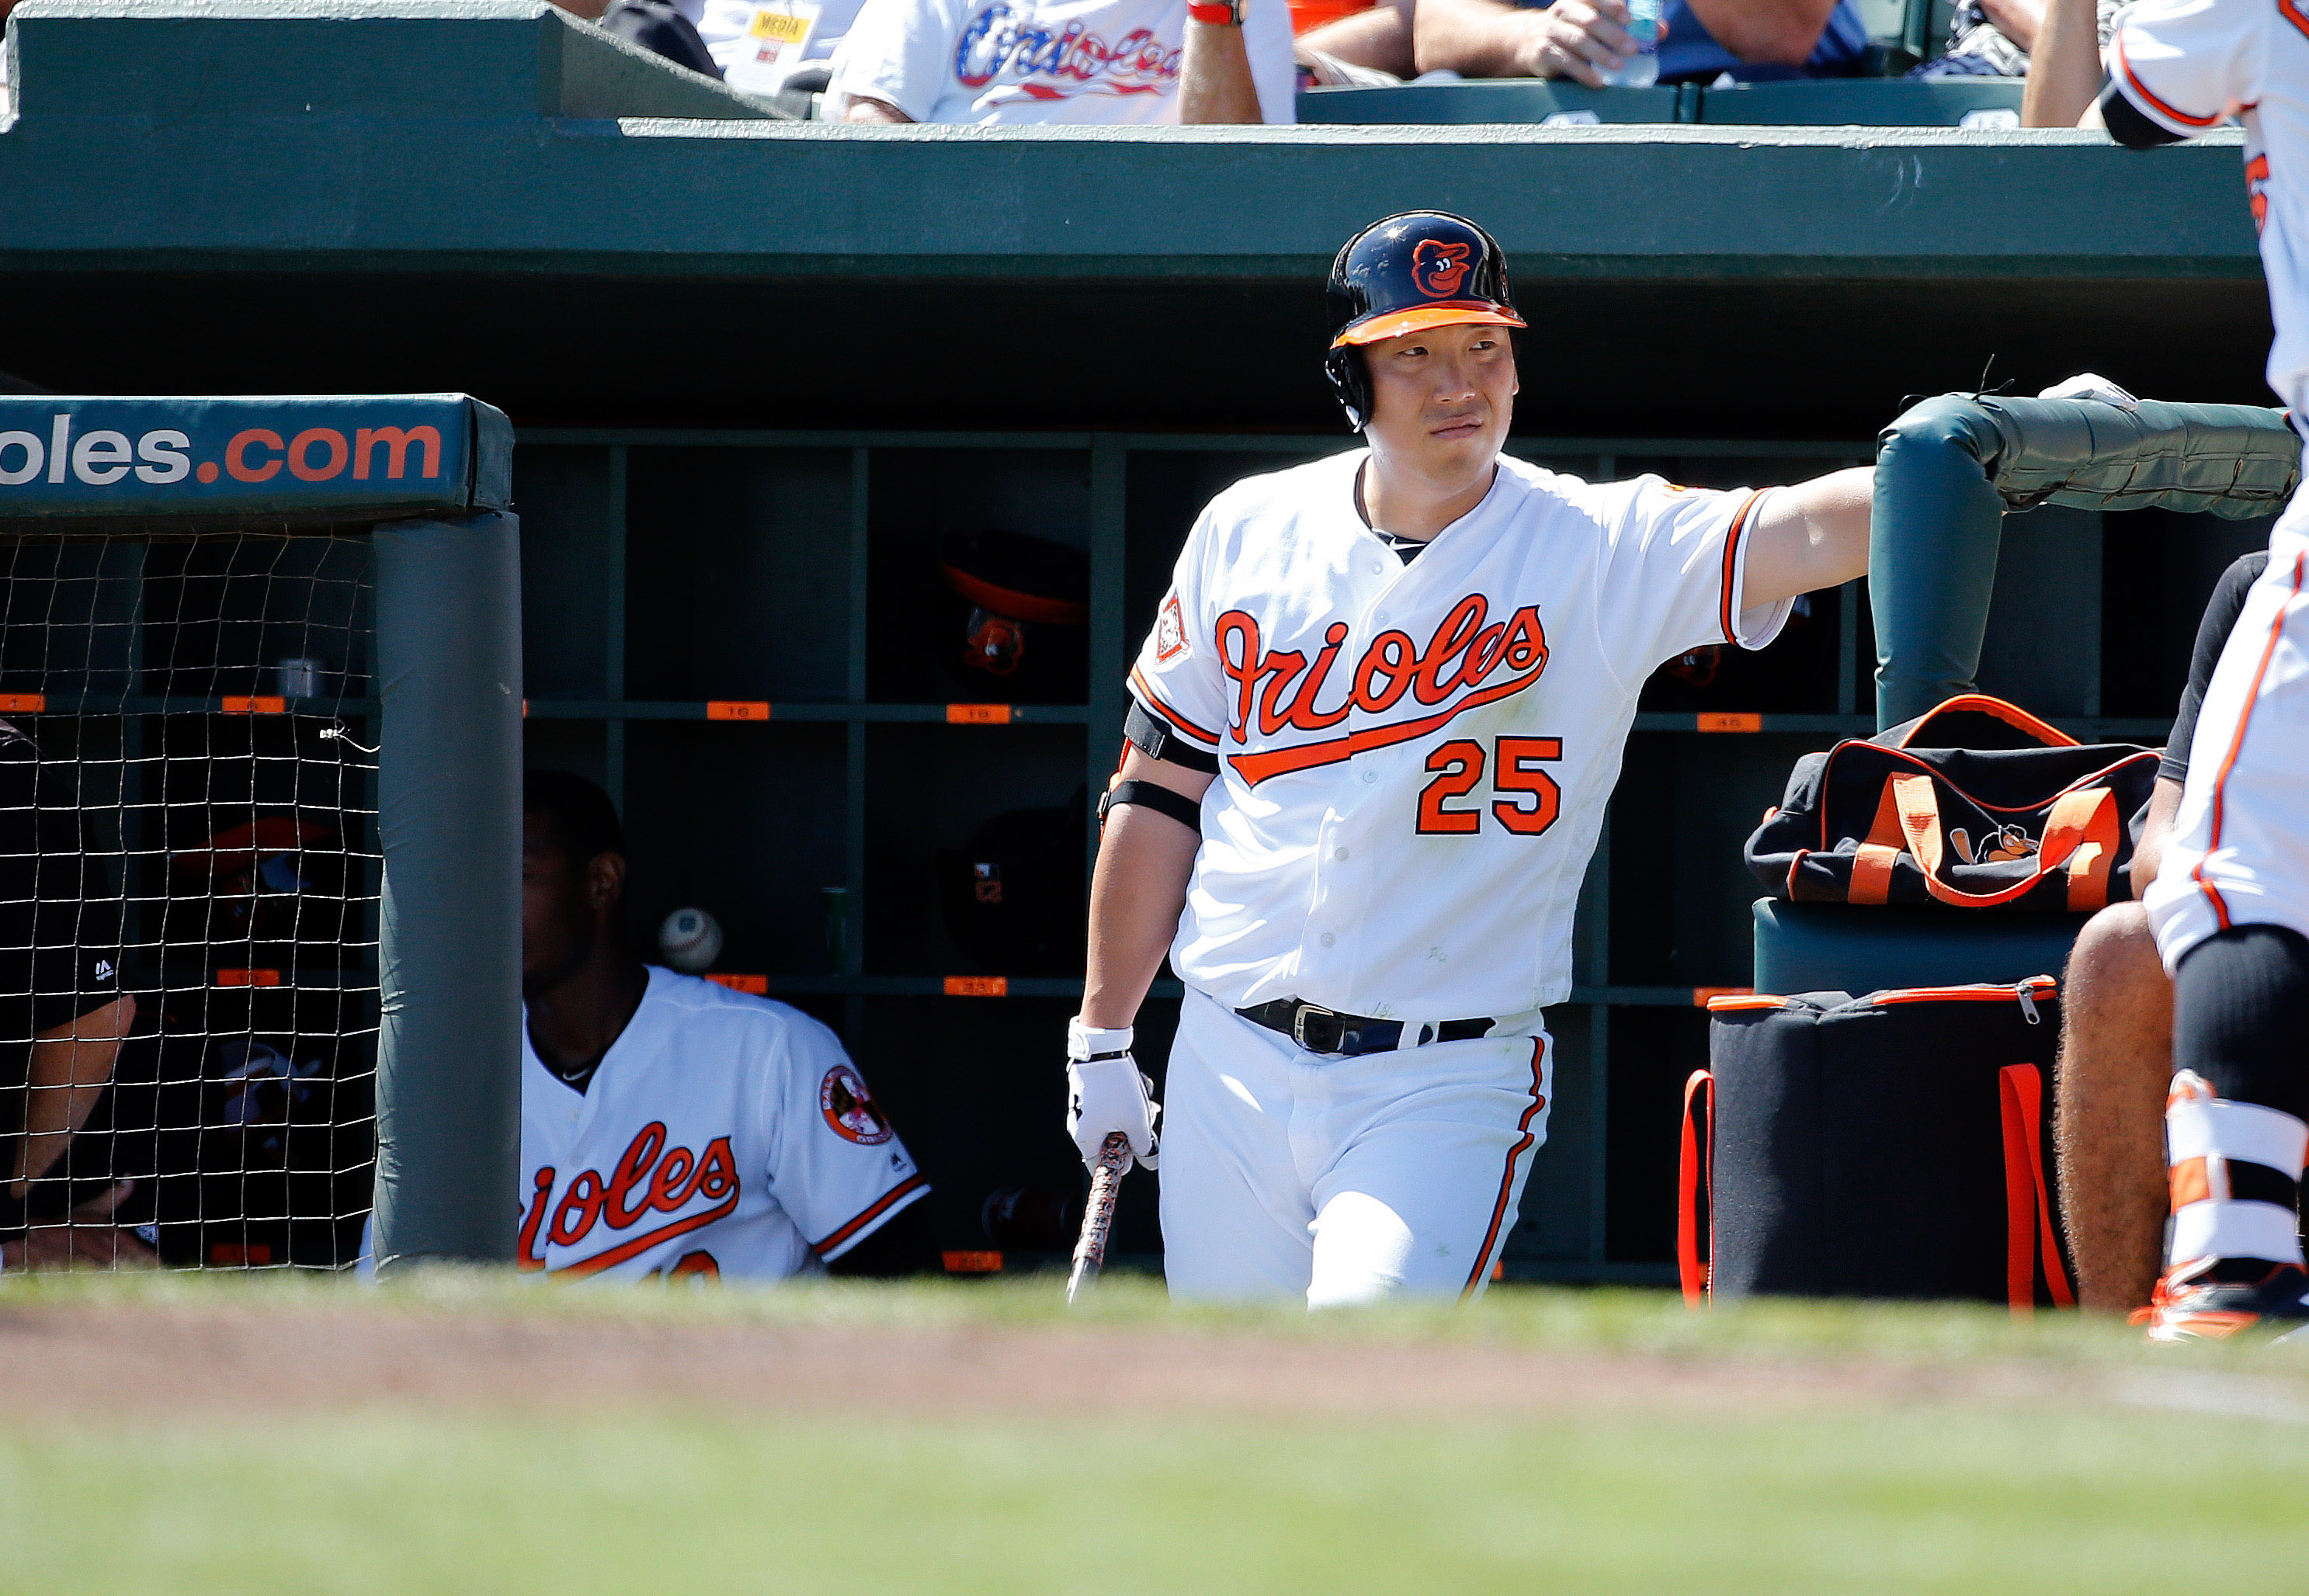 9930396-mlb-spring-training-minnesota-twins-at-baltimore-orioles